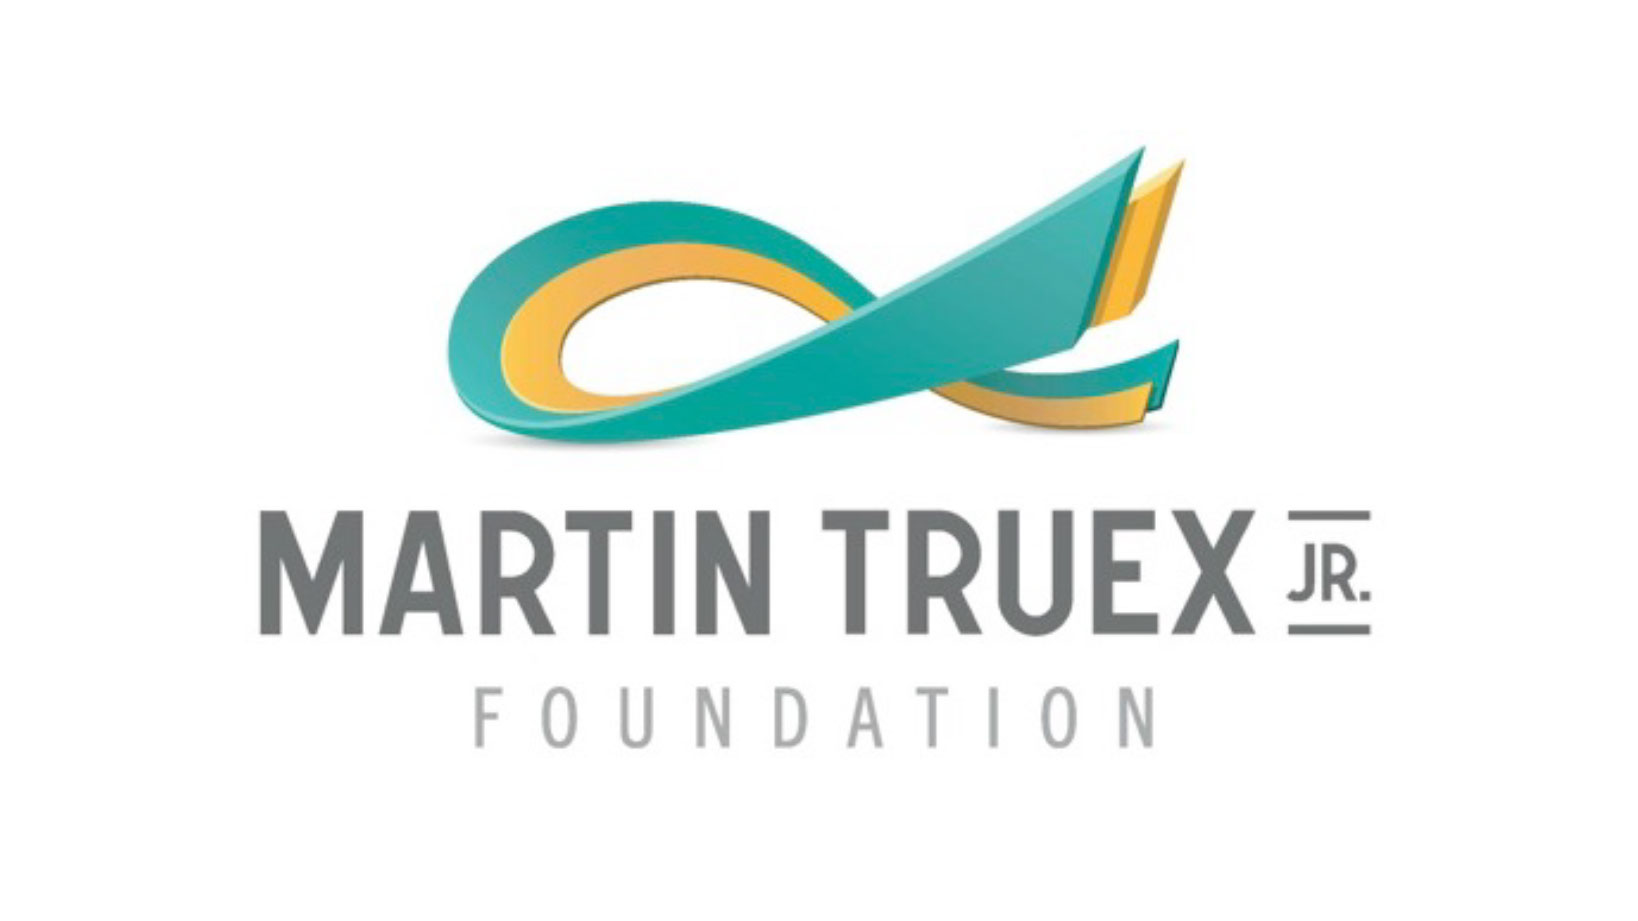 Martin Truex Jr. Foundation – Branding and Logo Design